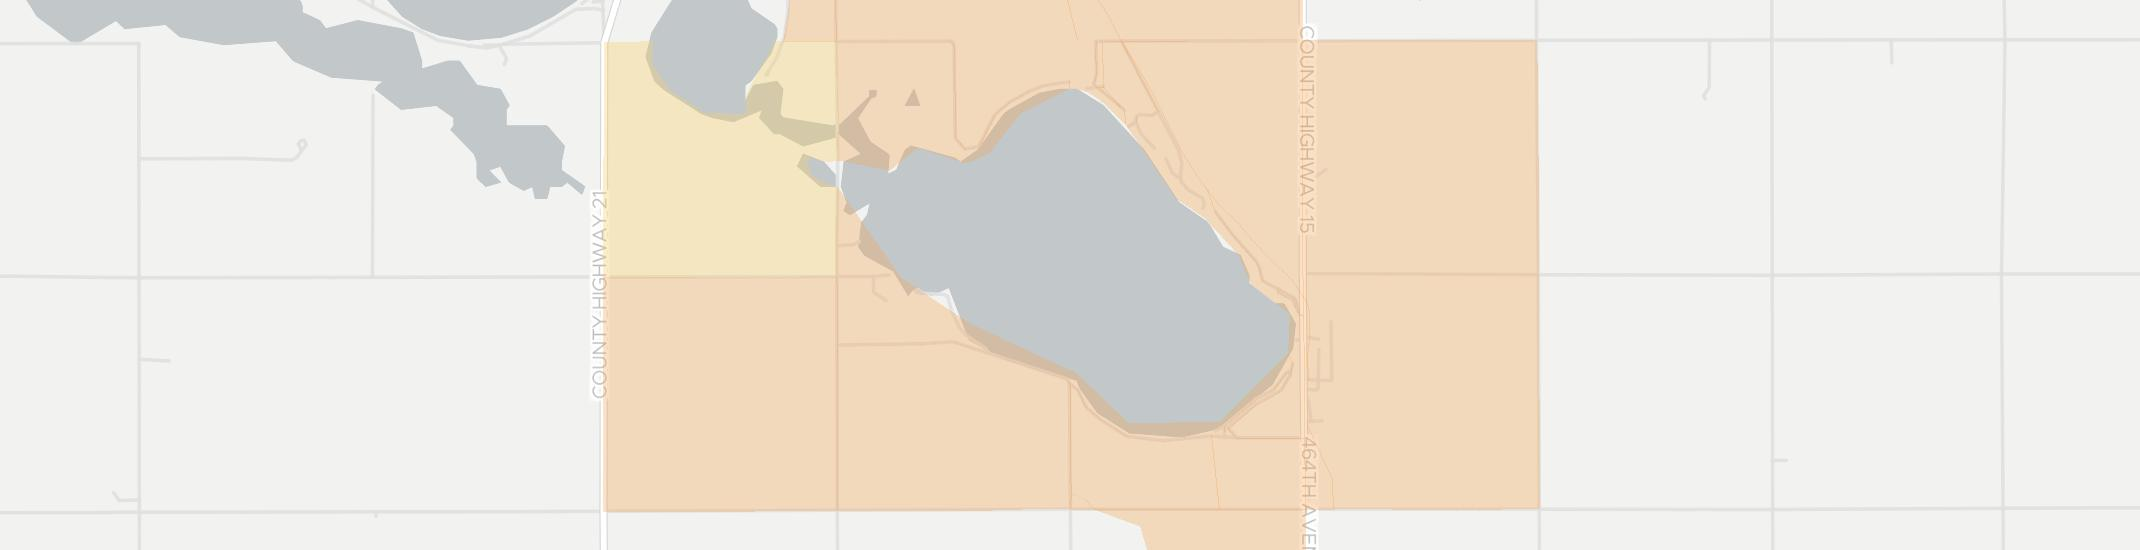 Brant Lake Internet Competition Map. Click for interactive map.